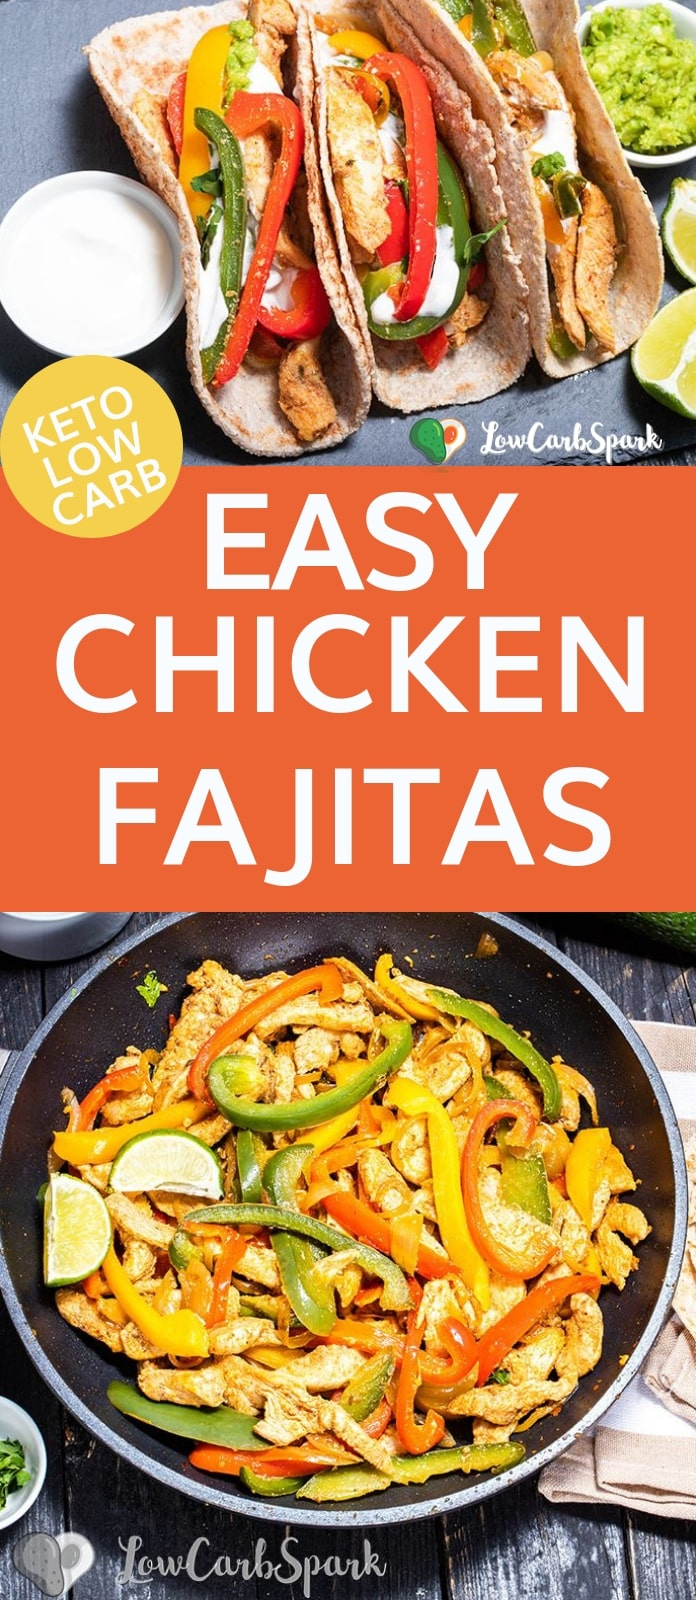 Did I mention that fajitas recipe is naturally low carb, keto, and paleo-friendly?  It\'s a colorful one-pot meal that\'s quick to make and insanely delicious. It contains only low carb ingredients: chicken breast, peppers, and onions. #fajitas